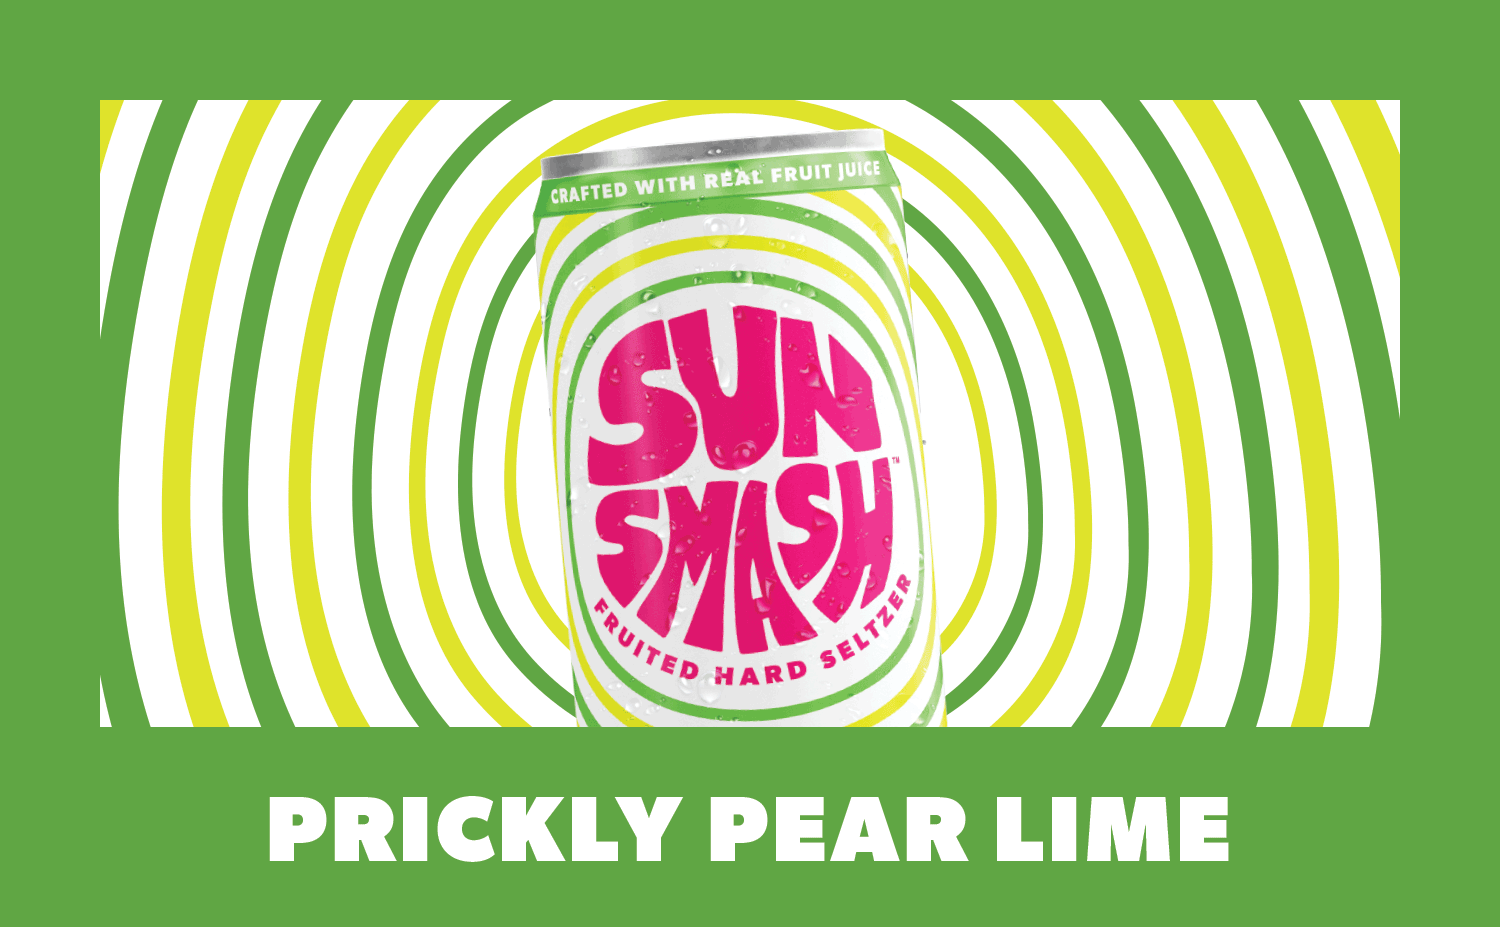 Prickly Pear Lime Hard Seltzer